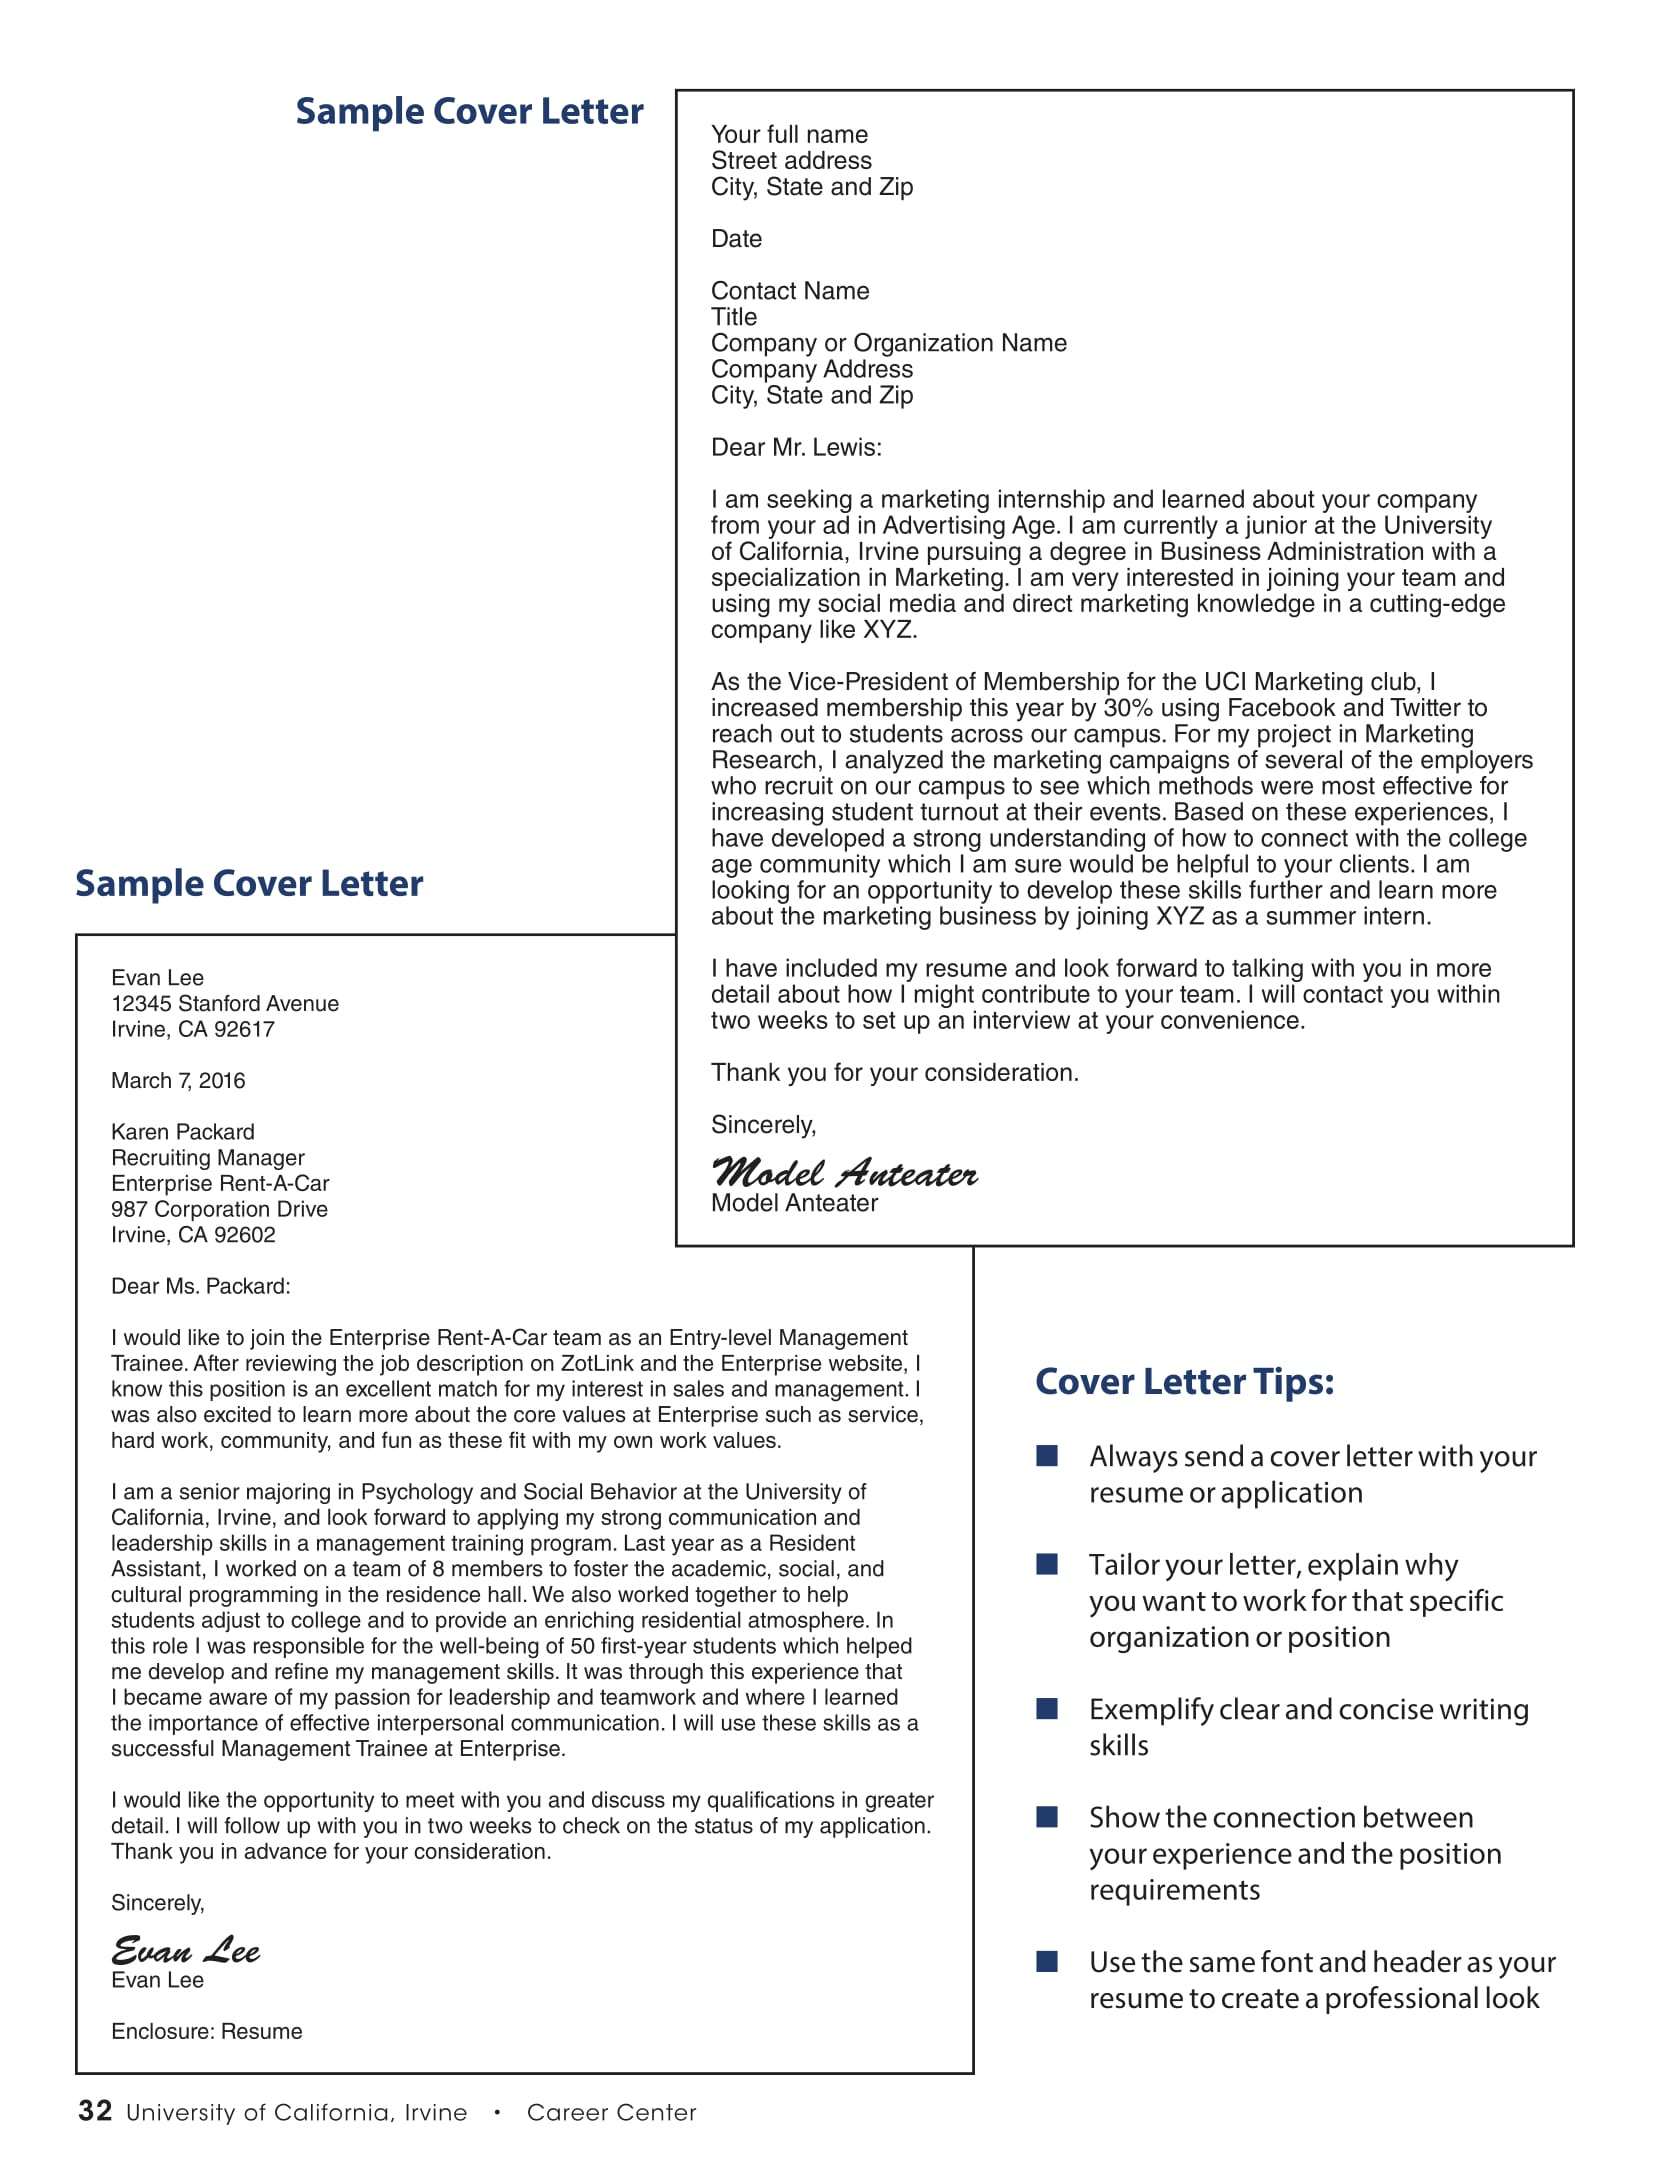 32 Best Sample Cover Letter Examples for Job Applicants  WiseStep